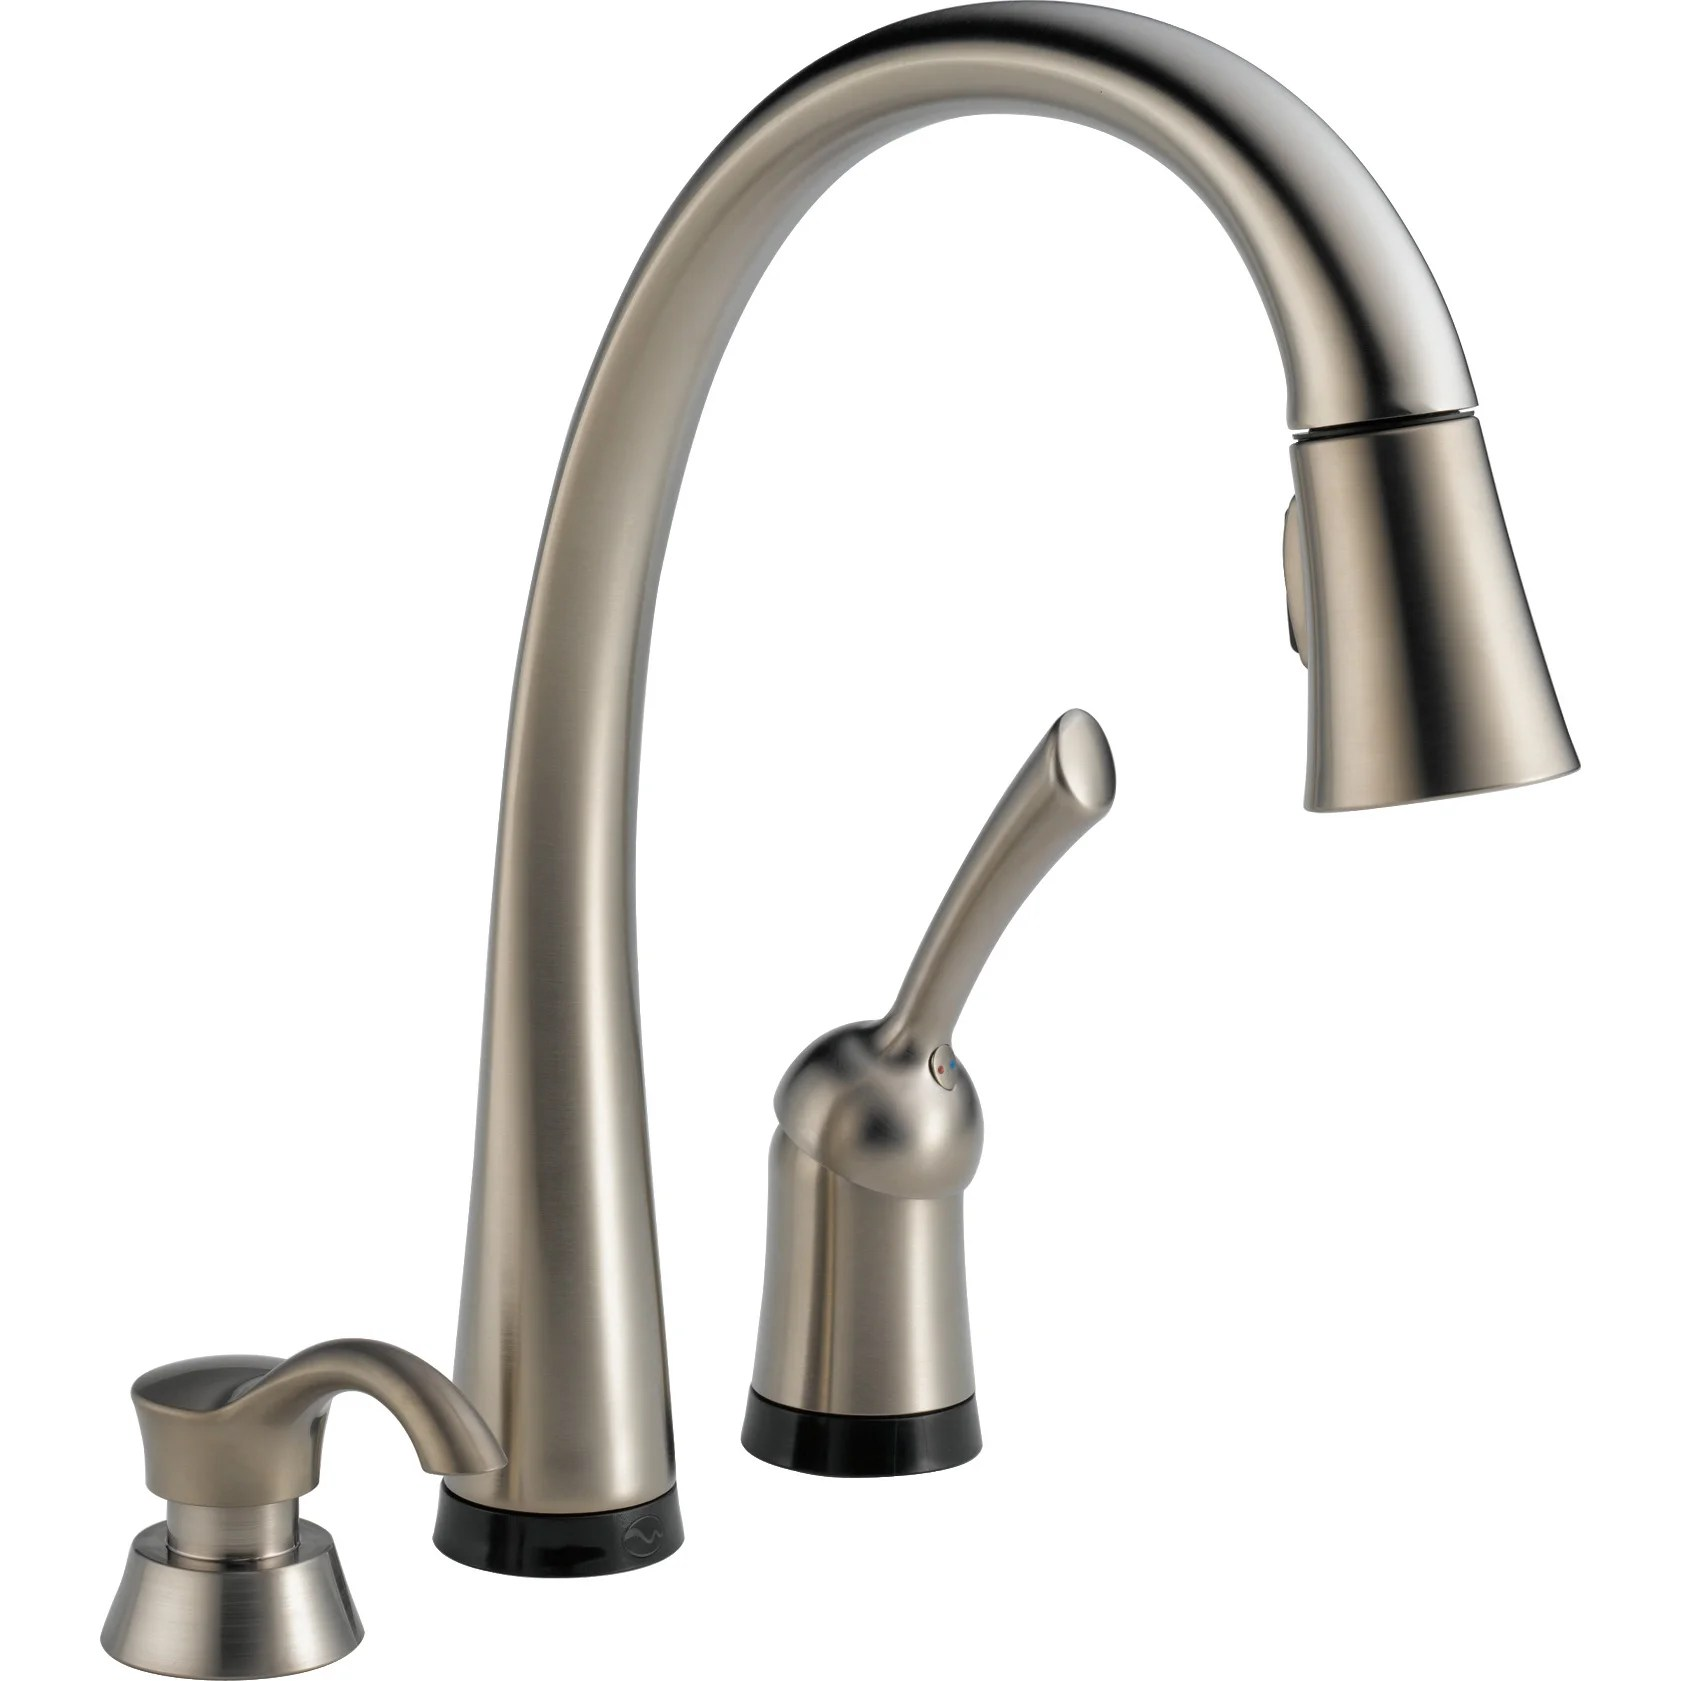 widespread kitchen faucet widespread kitchen faucet Delta Pilar Single Handle Standard Kitchen Faucet With Touch